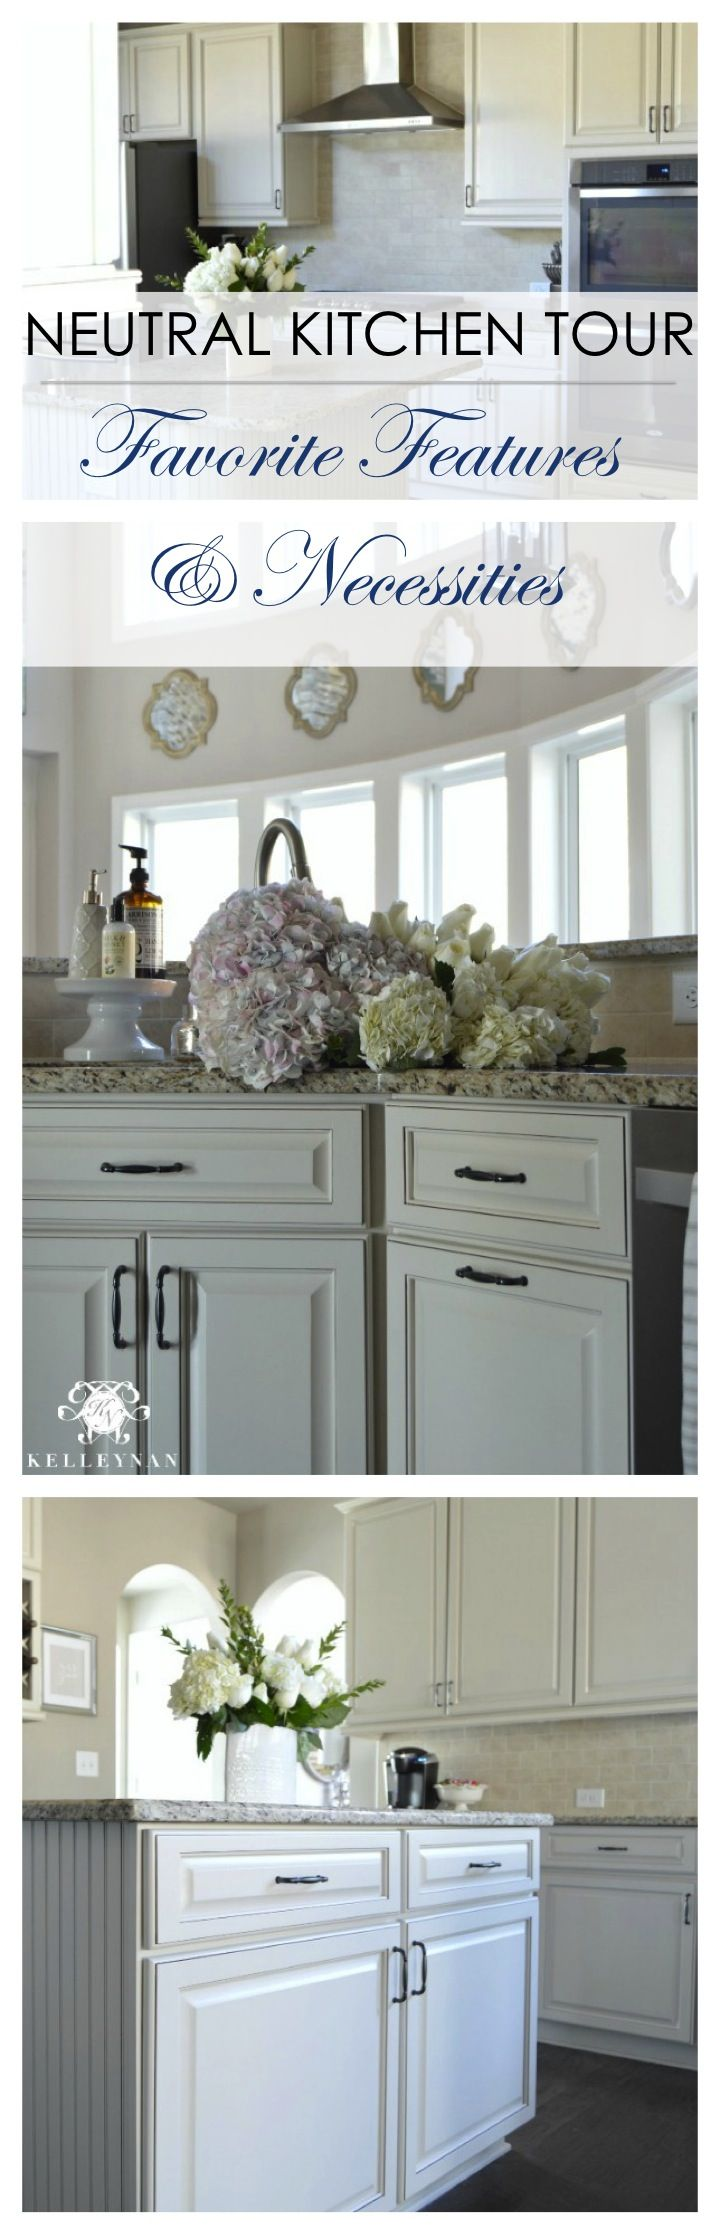 White and Neutral Kitchen Cabinets with dark hardwood floors, pewter knob pulls, and stainless steel appliances. Bead board kitchen island with granite countertops. Nottaway Hickory Weathered Saddle   Sherwin Williams SW Perfect Greige Paint   Puebla Travertina Beige Tile Backsplash   Giallo Ornamental Granite Countertop   butler's pantry   latnern lights in kitchen